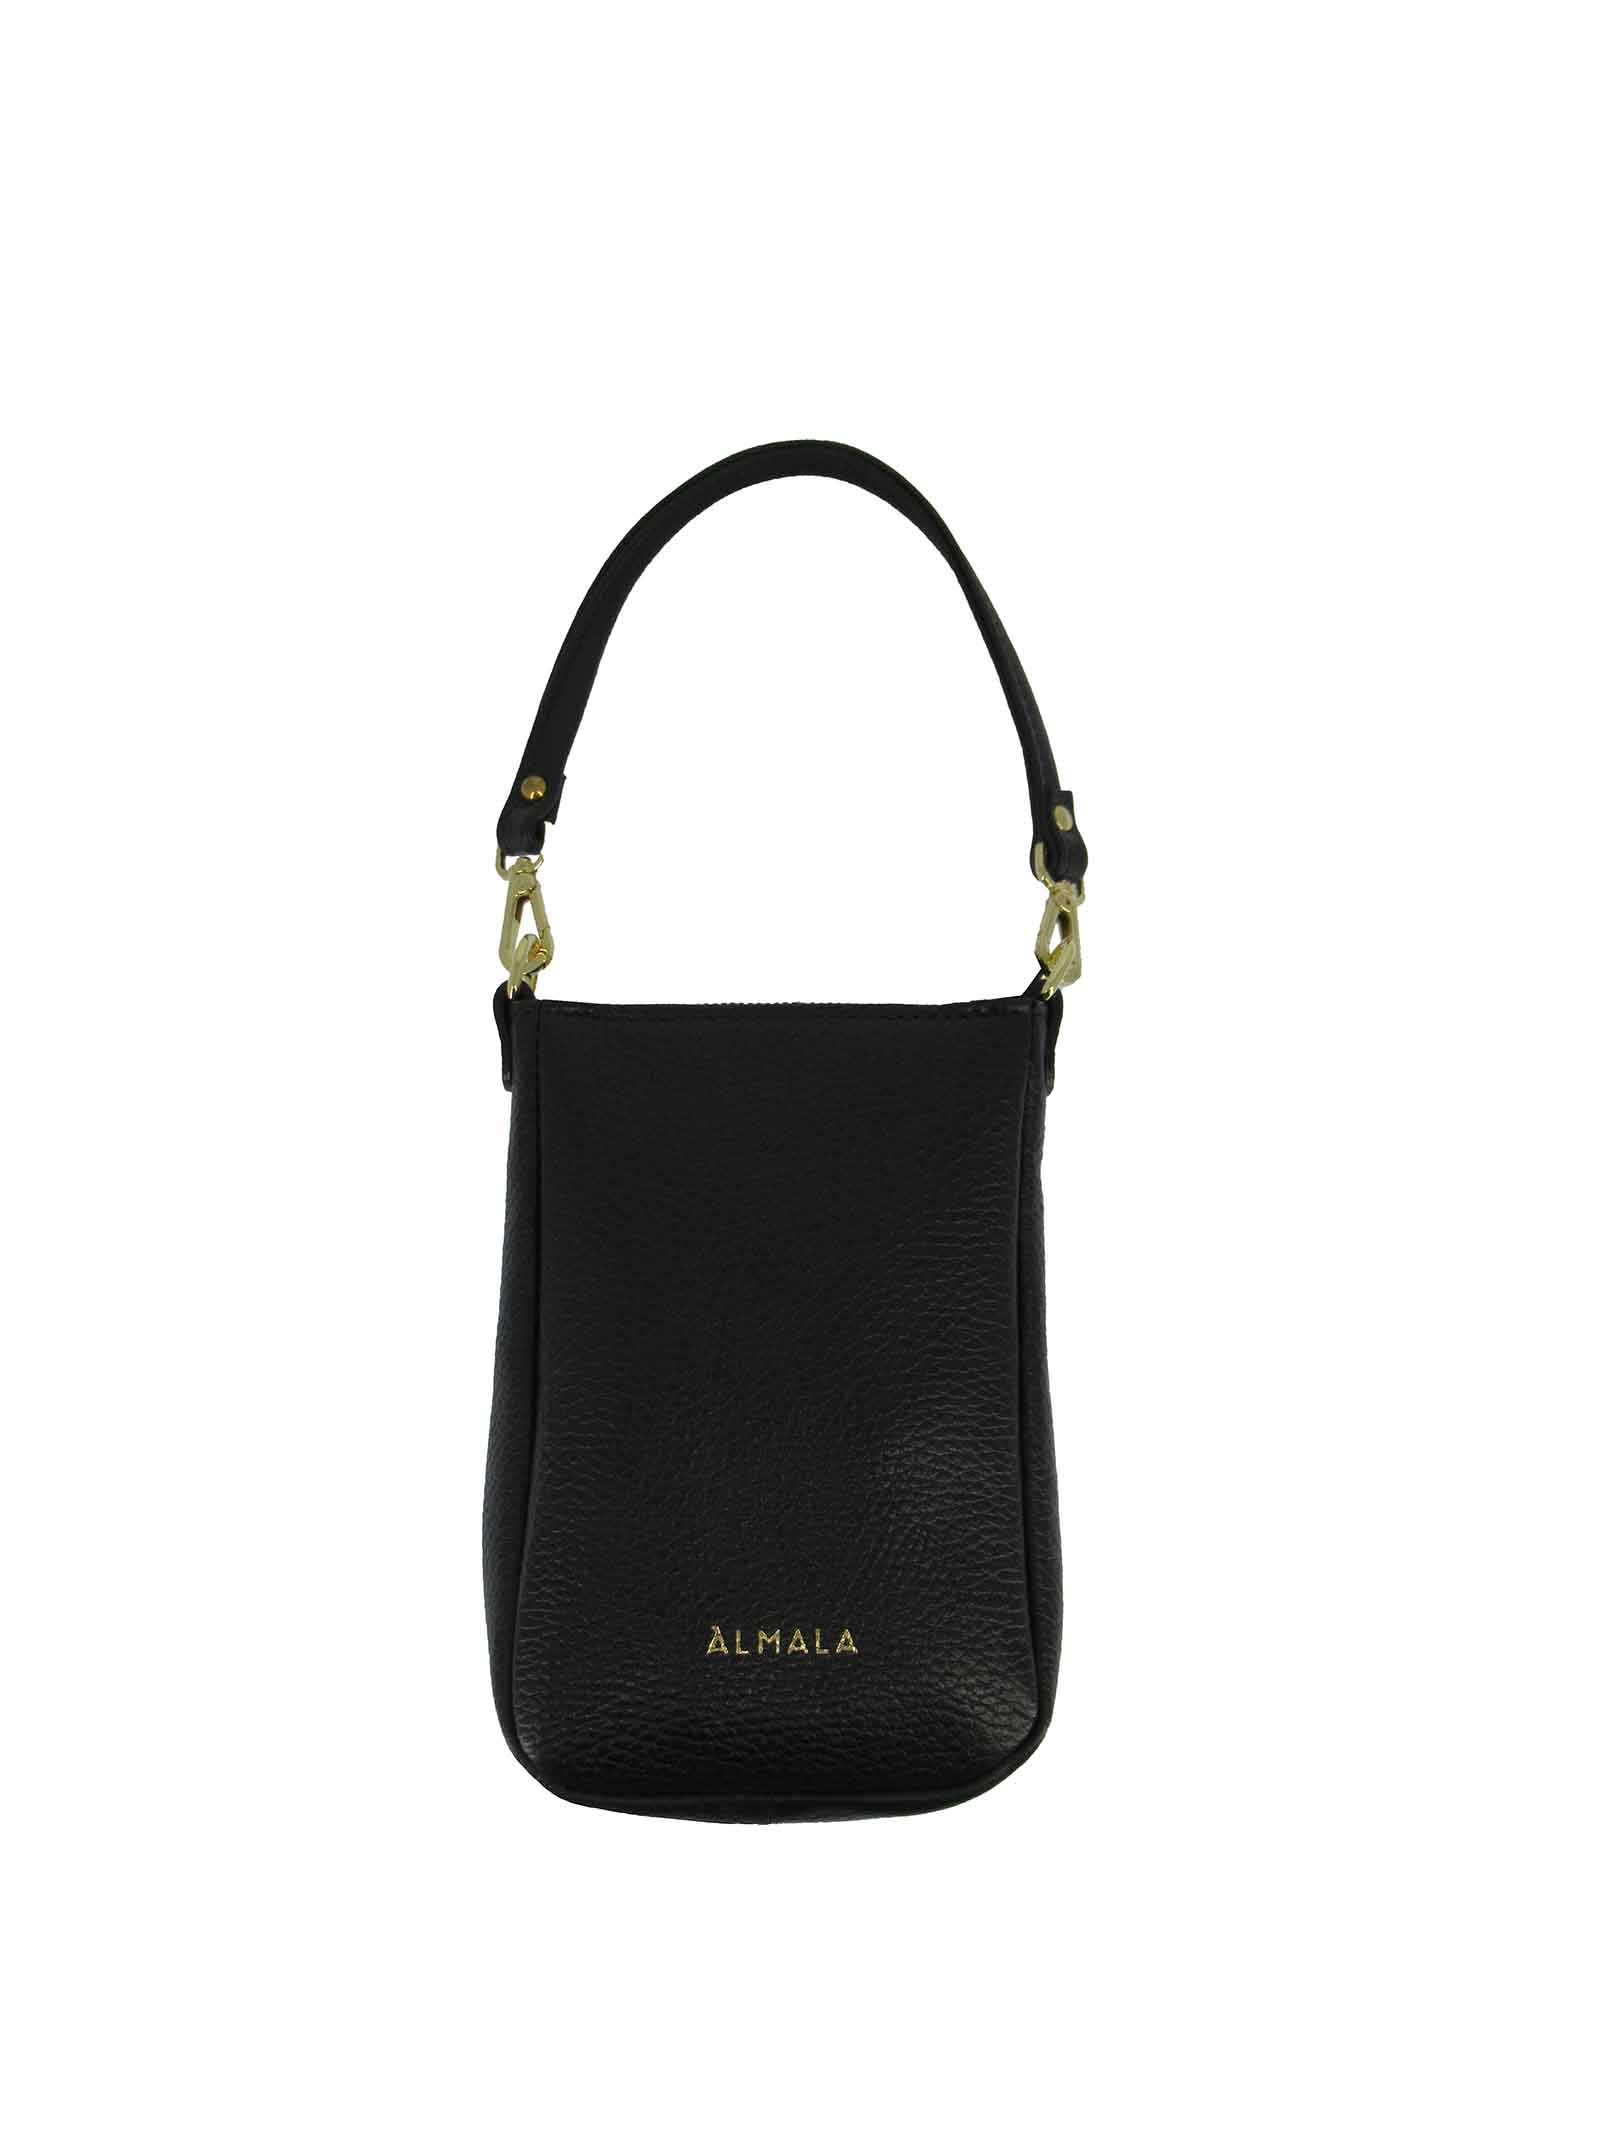 Women's Large Shoulder Shopping Bag Norma in Black Leather with Adjustable Leather Shoulder Strap with Gold Chain cg071a0211 Almala | Bags and backpacks | NORMA001